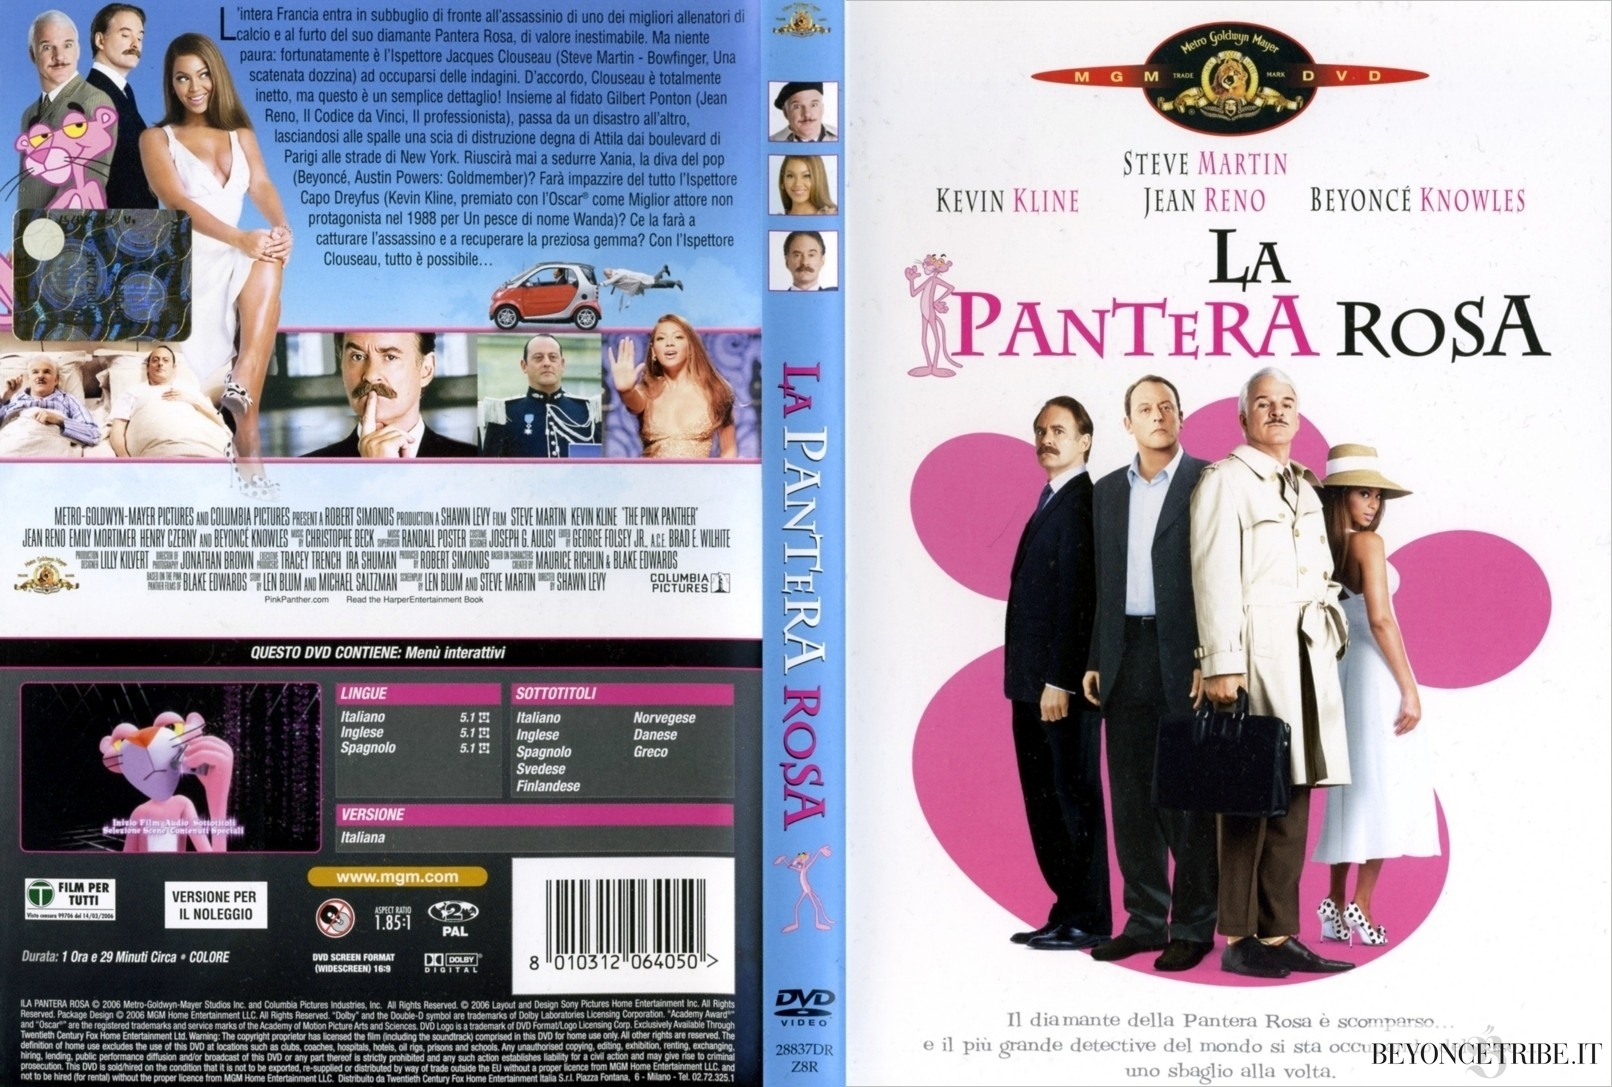 The Pink Panther Poster & DVD Cover Italian edition